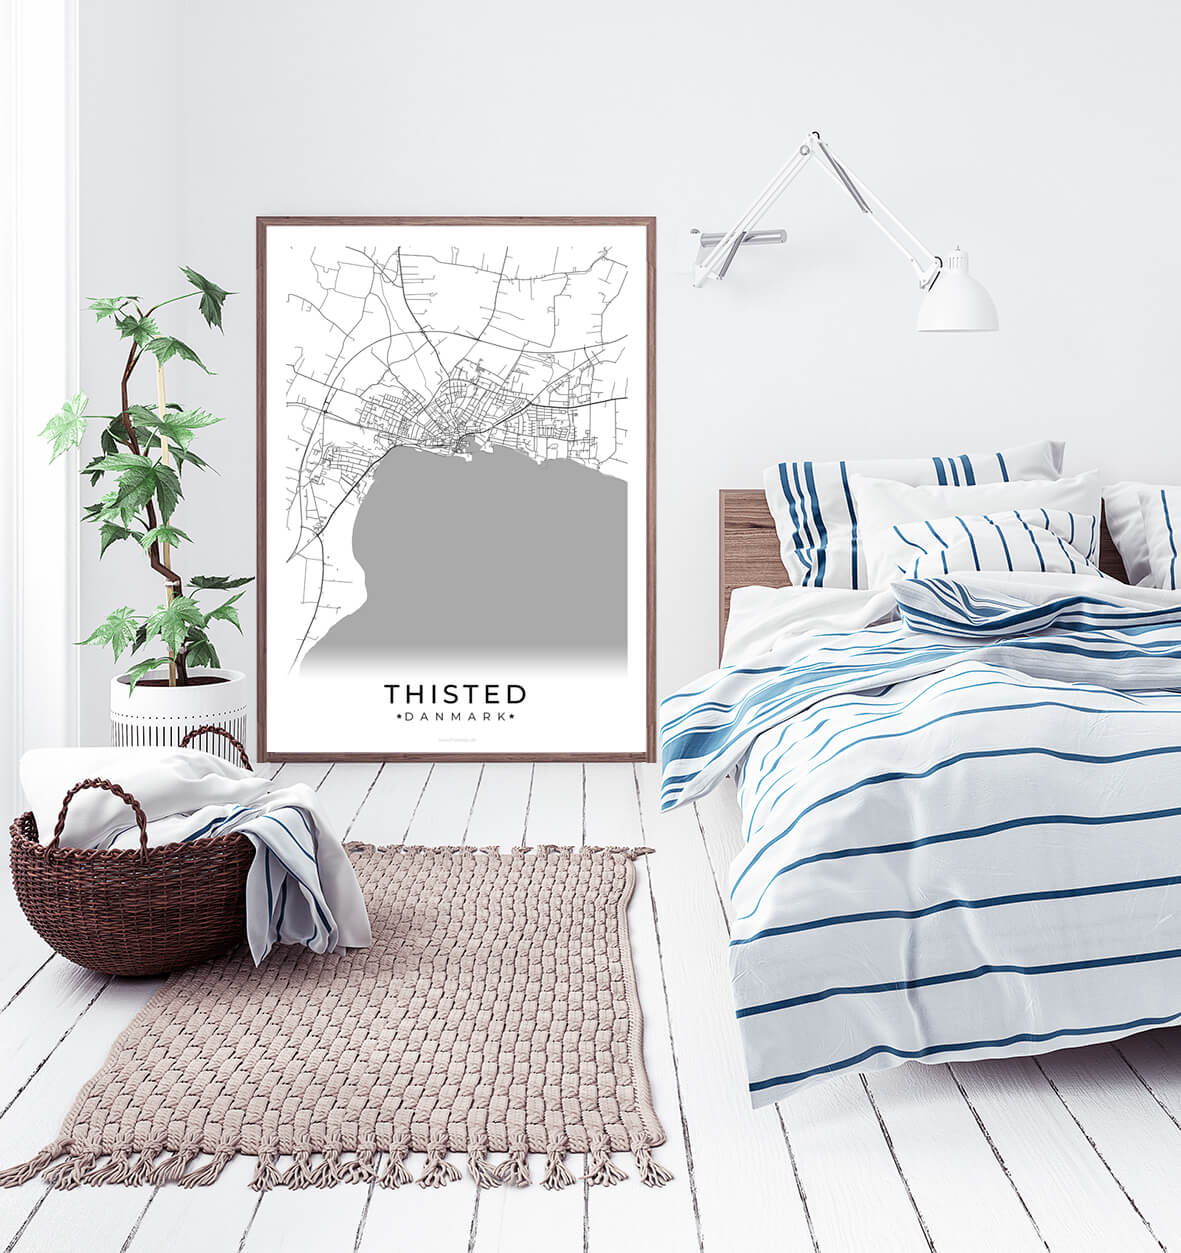 Thisted-hvid-byplakat-2